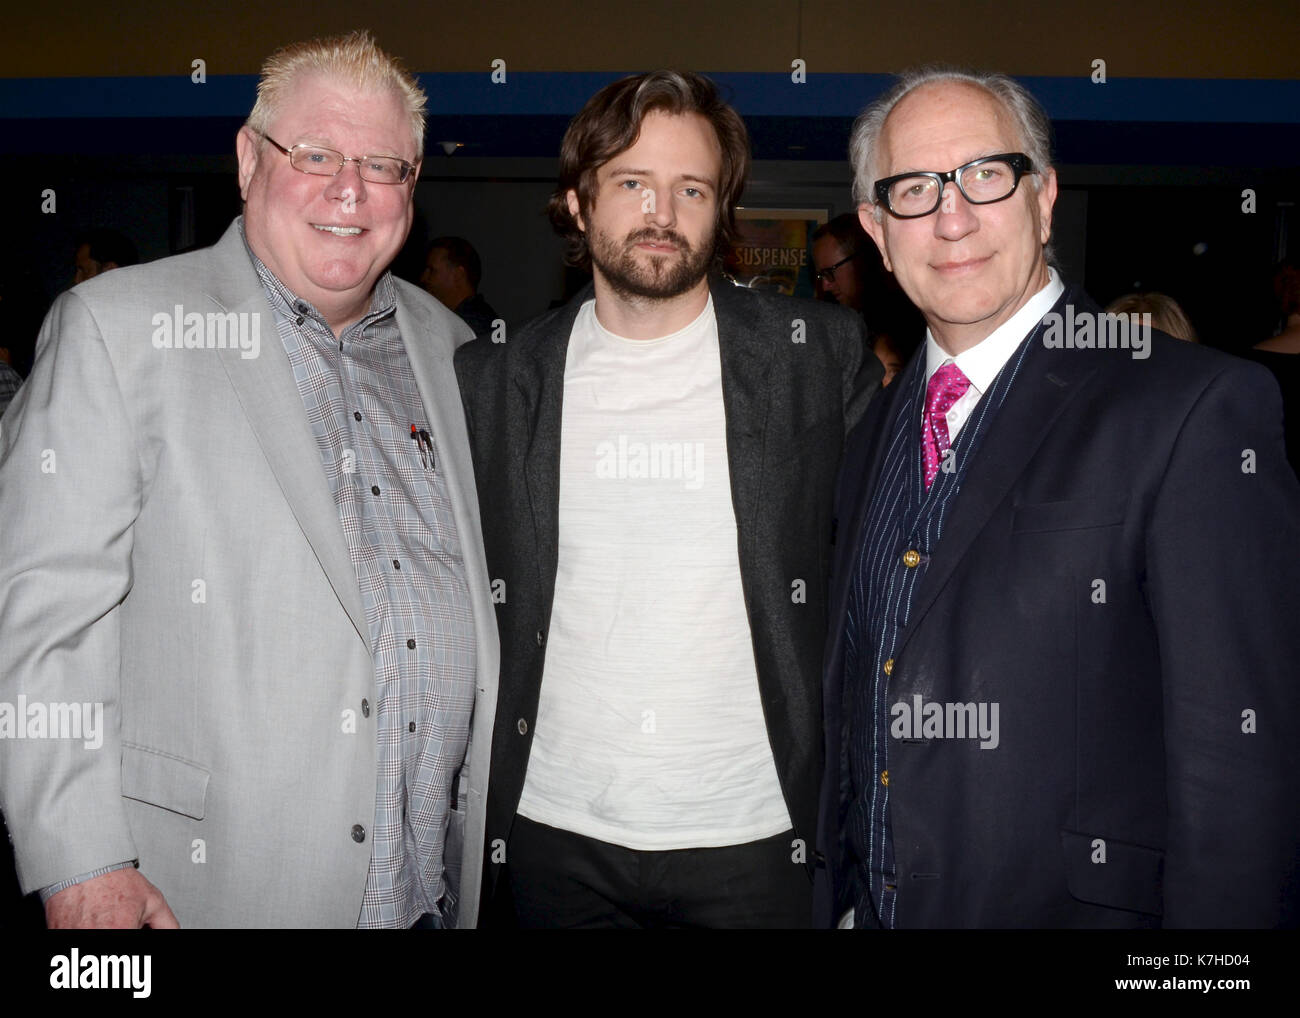 Daniel Petrie Jr.,Ross Duffer Howard Rodman attends WGAW's Sublime Primetime 2017 Panel Discussion Emmy-nominated writers Writers Guild Theater September 15,2016 Beverly Hills,California. - Stock Image